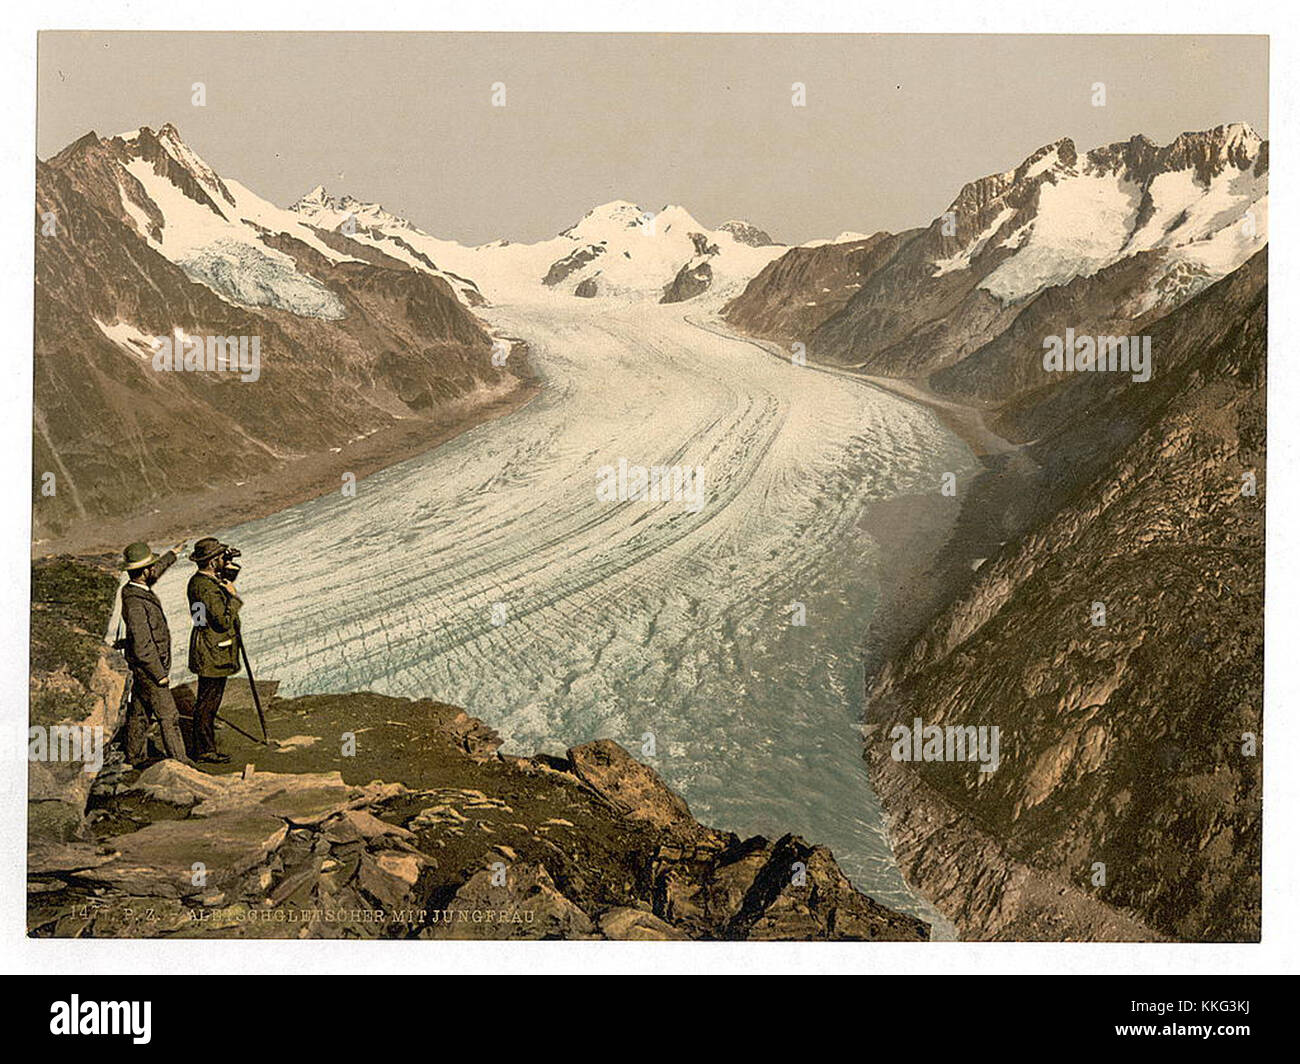 A beautiful vintage landscape with a mountain range Stock Photo